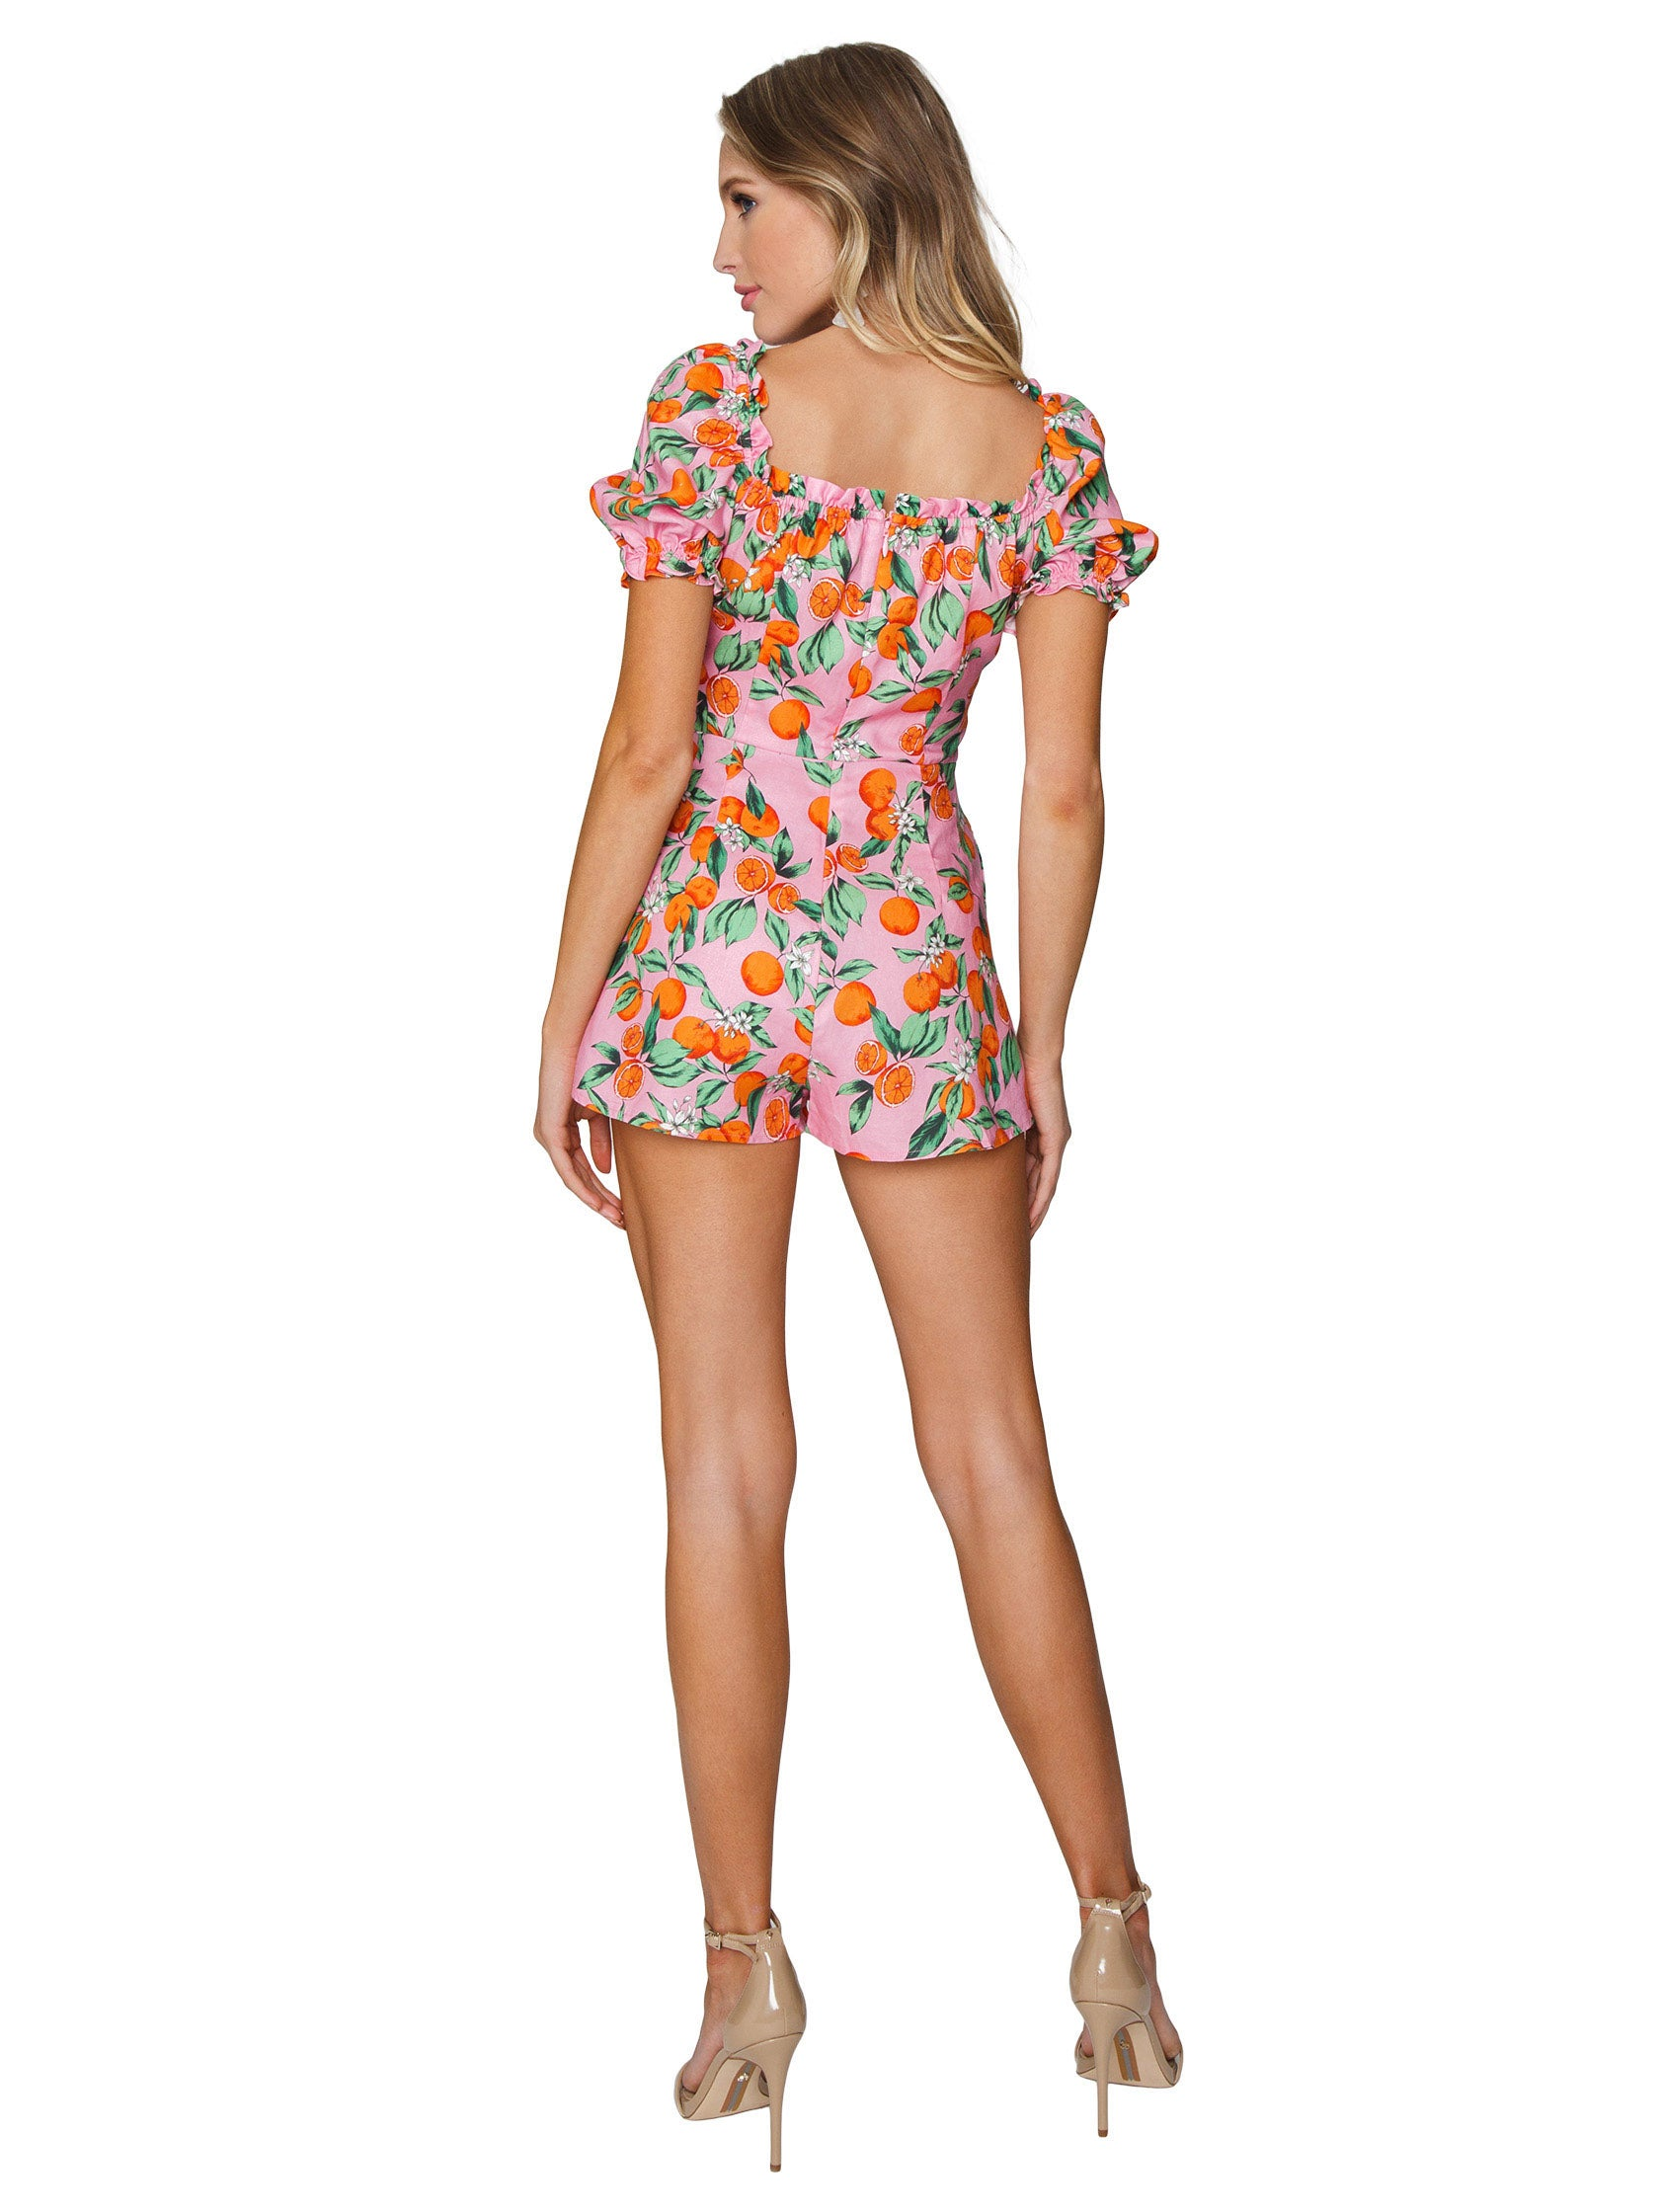 Women wearing a romper rental from Finders Keepers called Aranciata Playsuit